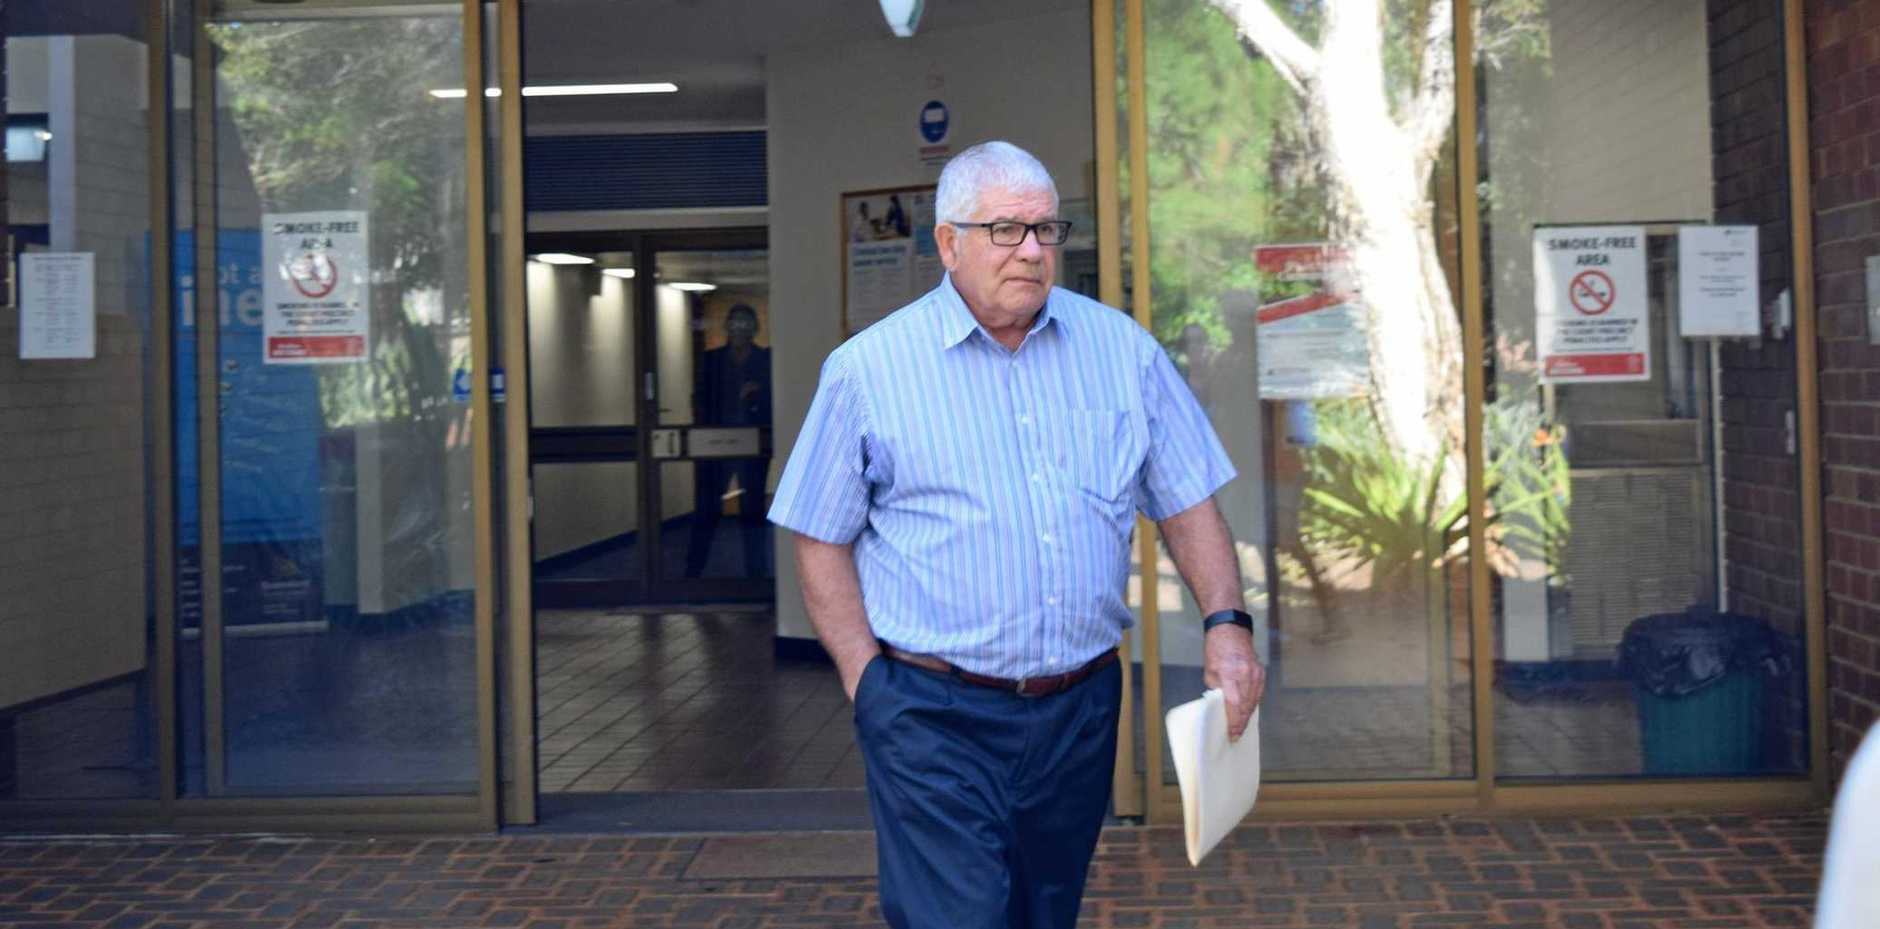 LEAVING COURT: Richard Francis Sinclair pleads guilty to publishing matter defamatory of another living person.